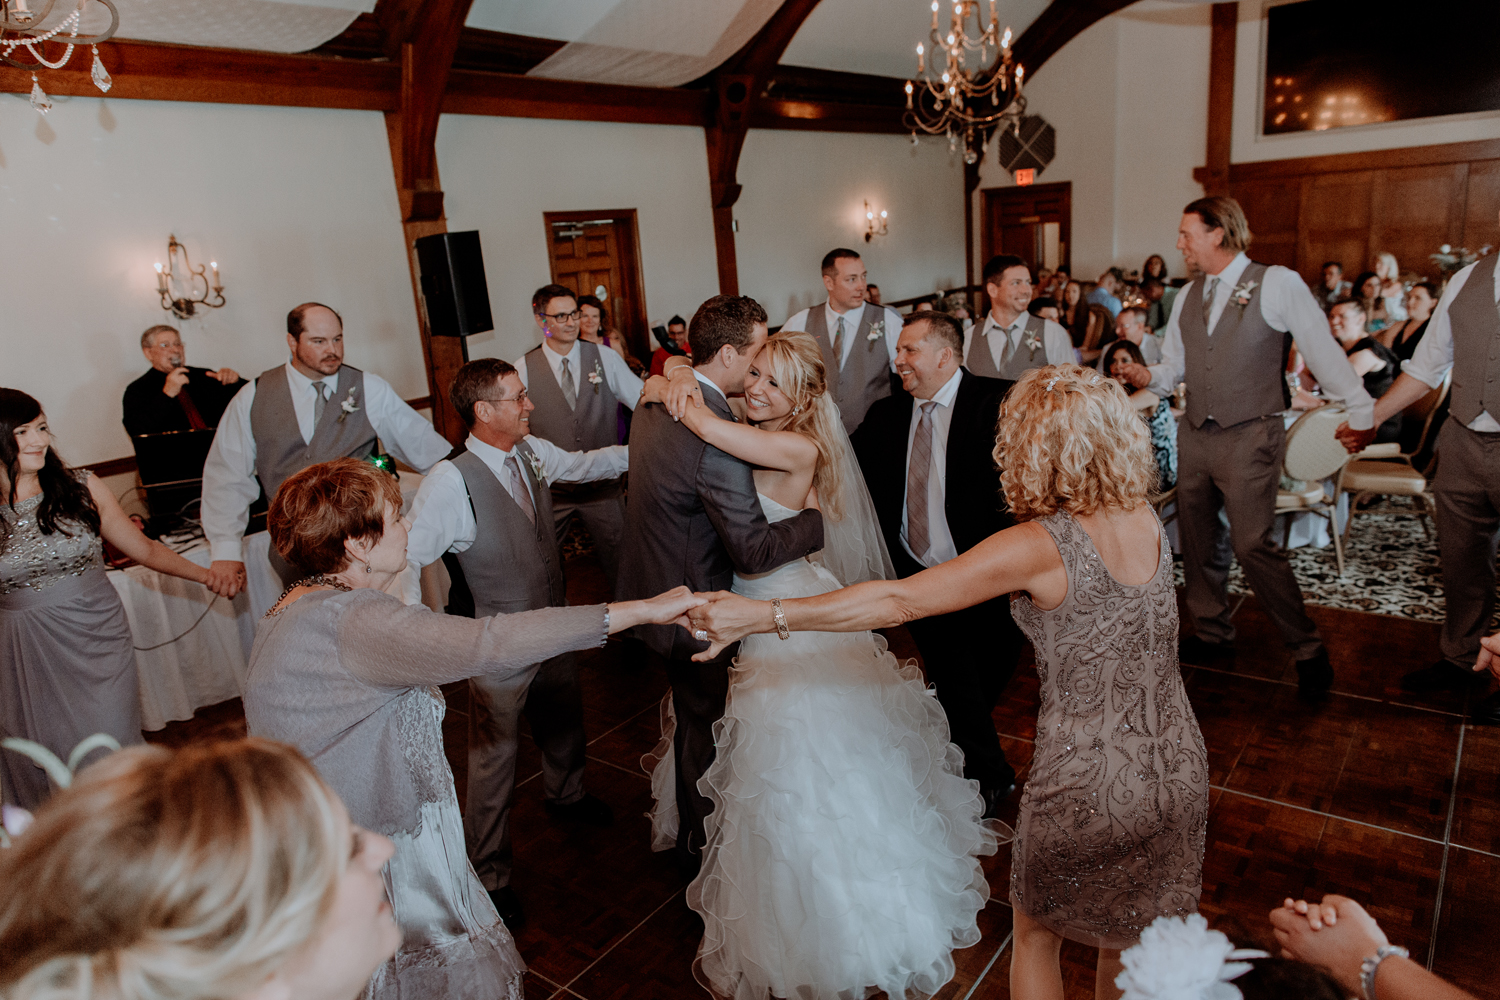 silver-creek-country-club-bride-and-groom-wedding-dance-photography